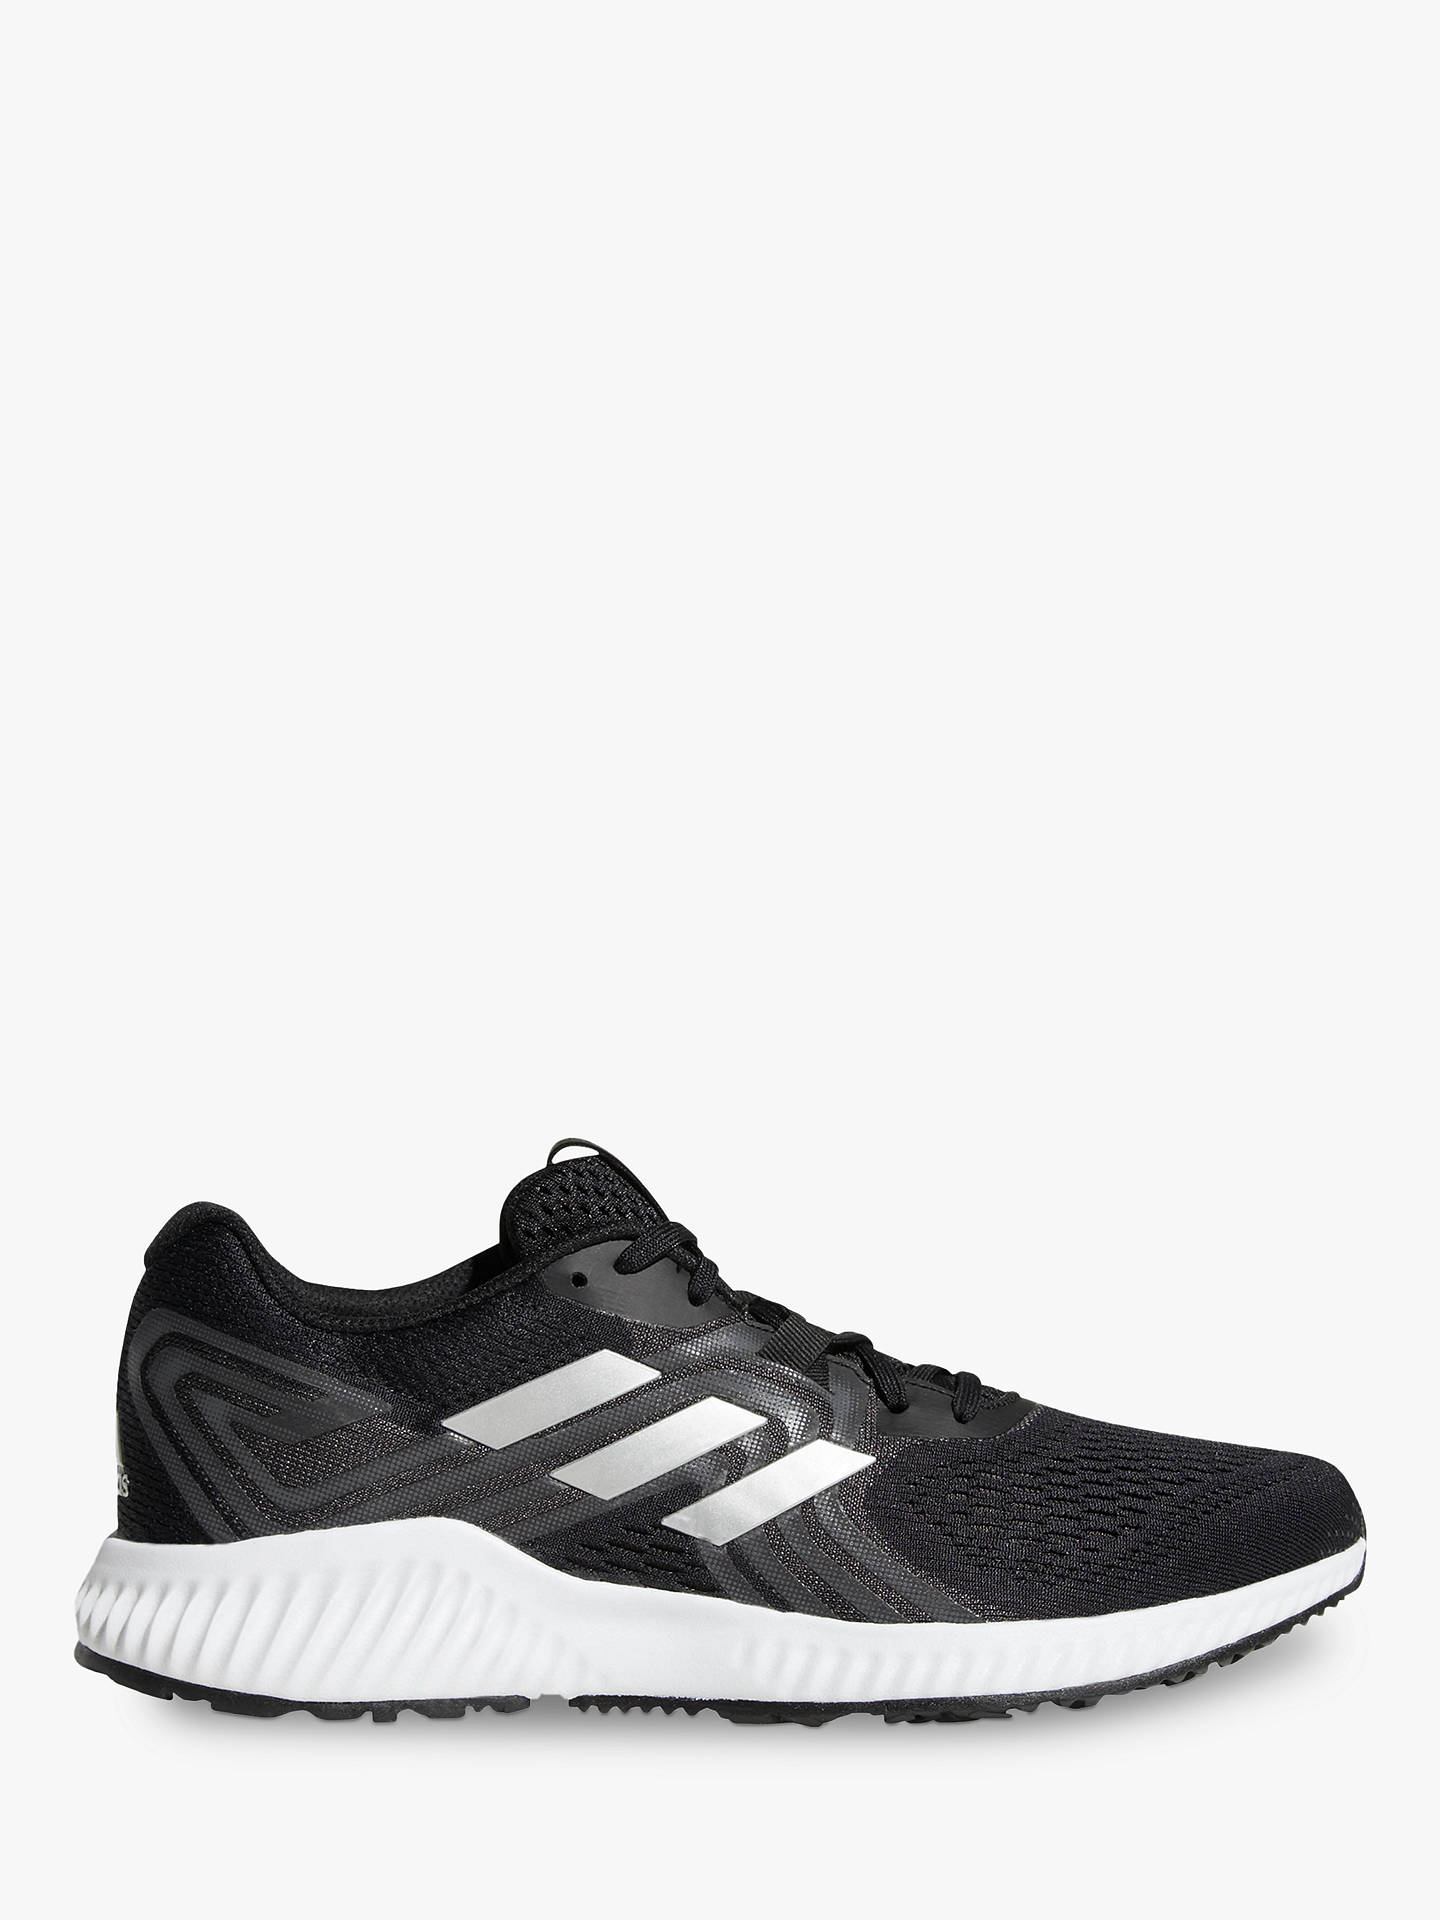 Buy adidas Aerobounce 2 Men's Running Shoes, Core Black/Silver, 7 Online at johnlewis.com